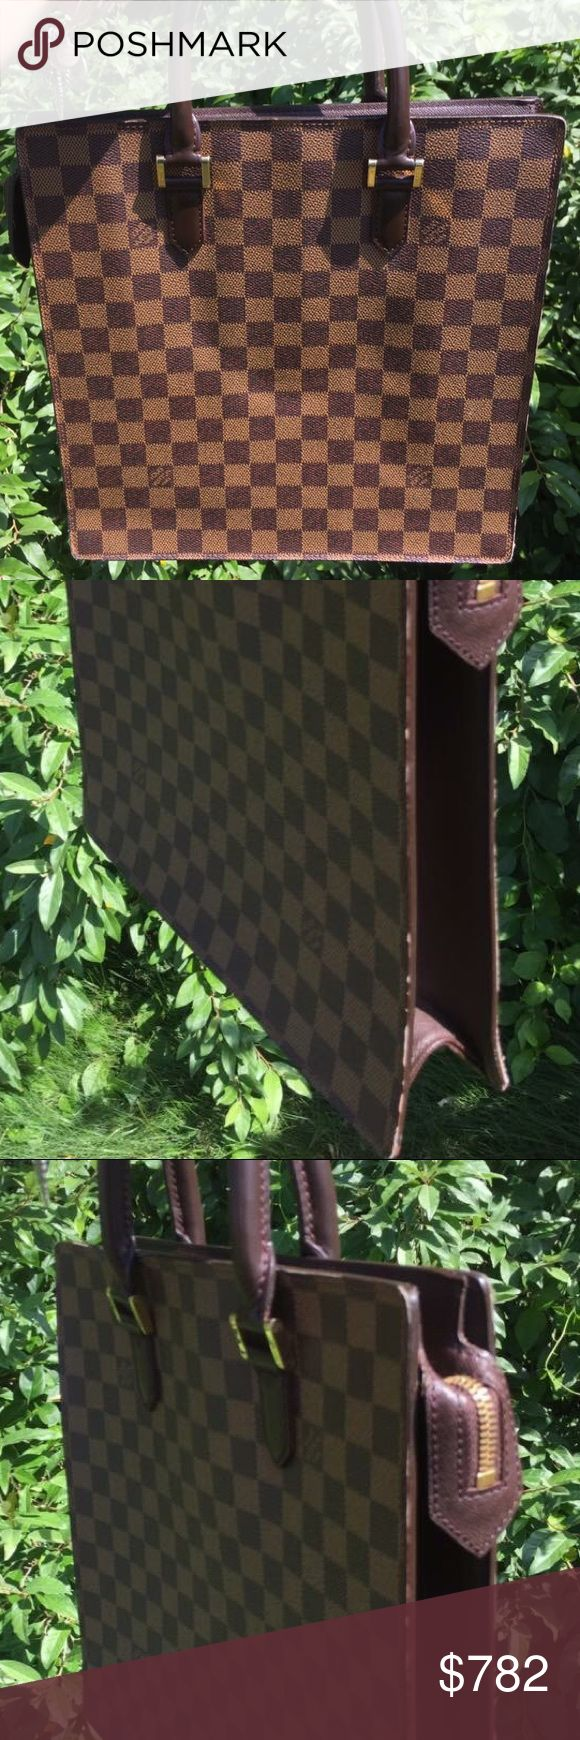 Louis Vuitton Damier Venice PM Bag 100% AUTHENTIC- Great condition - Price firm no trades - buy for less & more pics at www.chicboutiqueconsignments.com! MA's #1 designer consignment boutique! Louis Vuitton Bags Totes